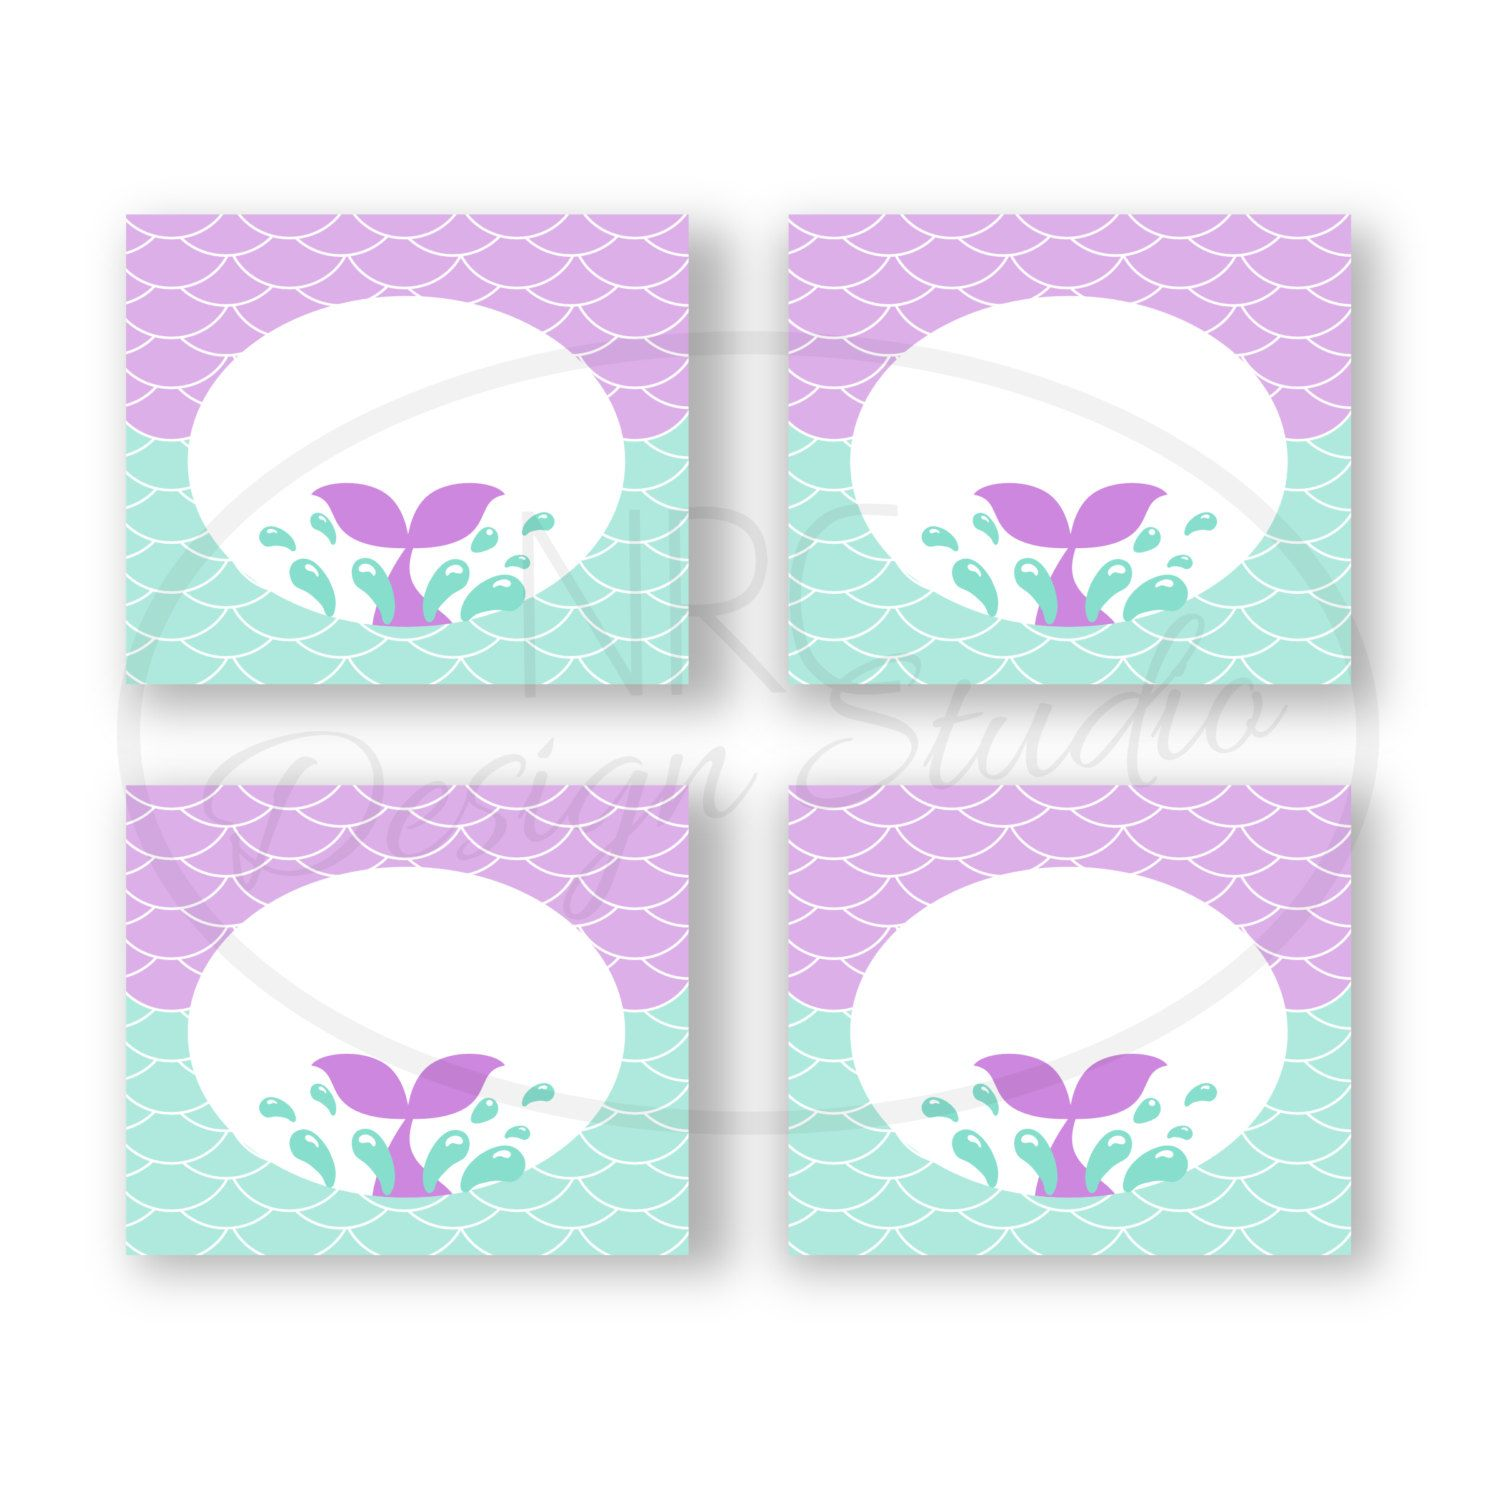 picture relating to Printable Mermaid called Mermaid Tent Playing cards - Printable Mermaid Social gathering Tent Playing cards